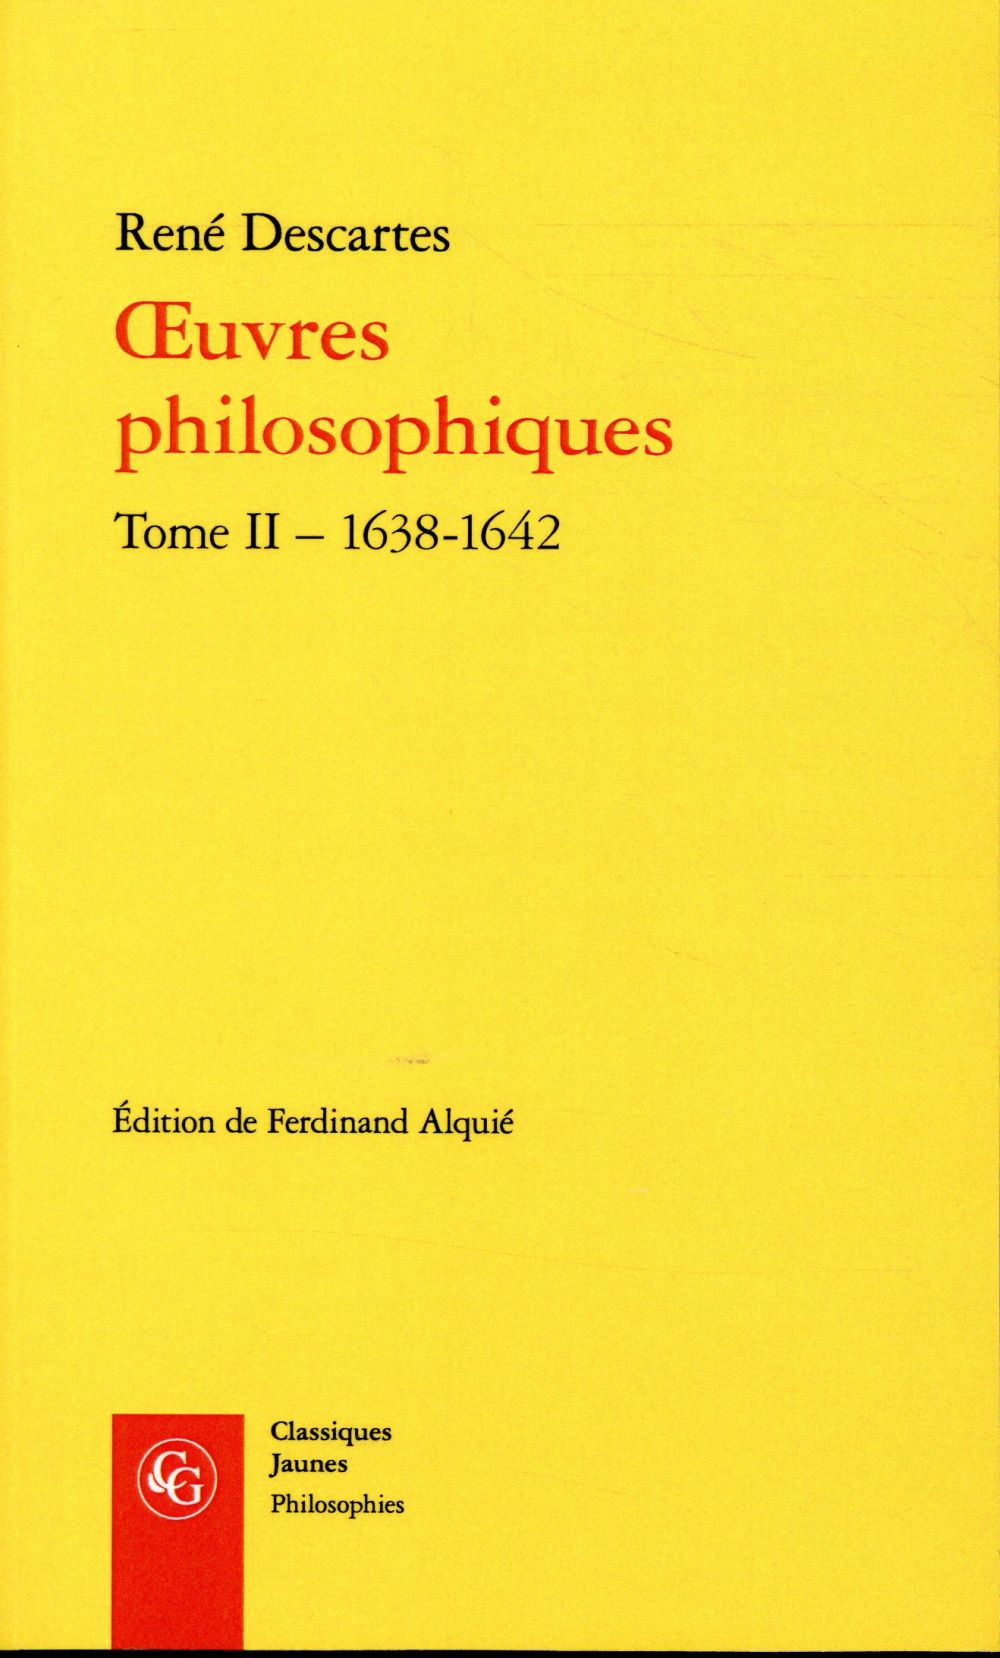 PHILOSOPHIES - T03 - OEUVRES PHILOSOPHIQUES - TOME II - 1638-1642 - TOME II 1638-1642